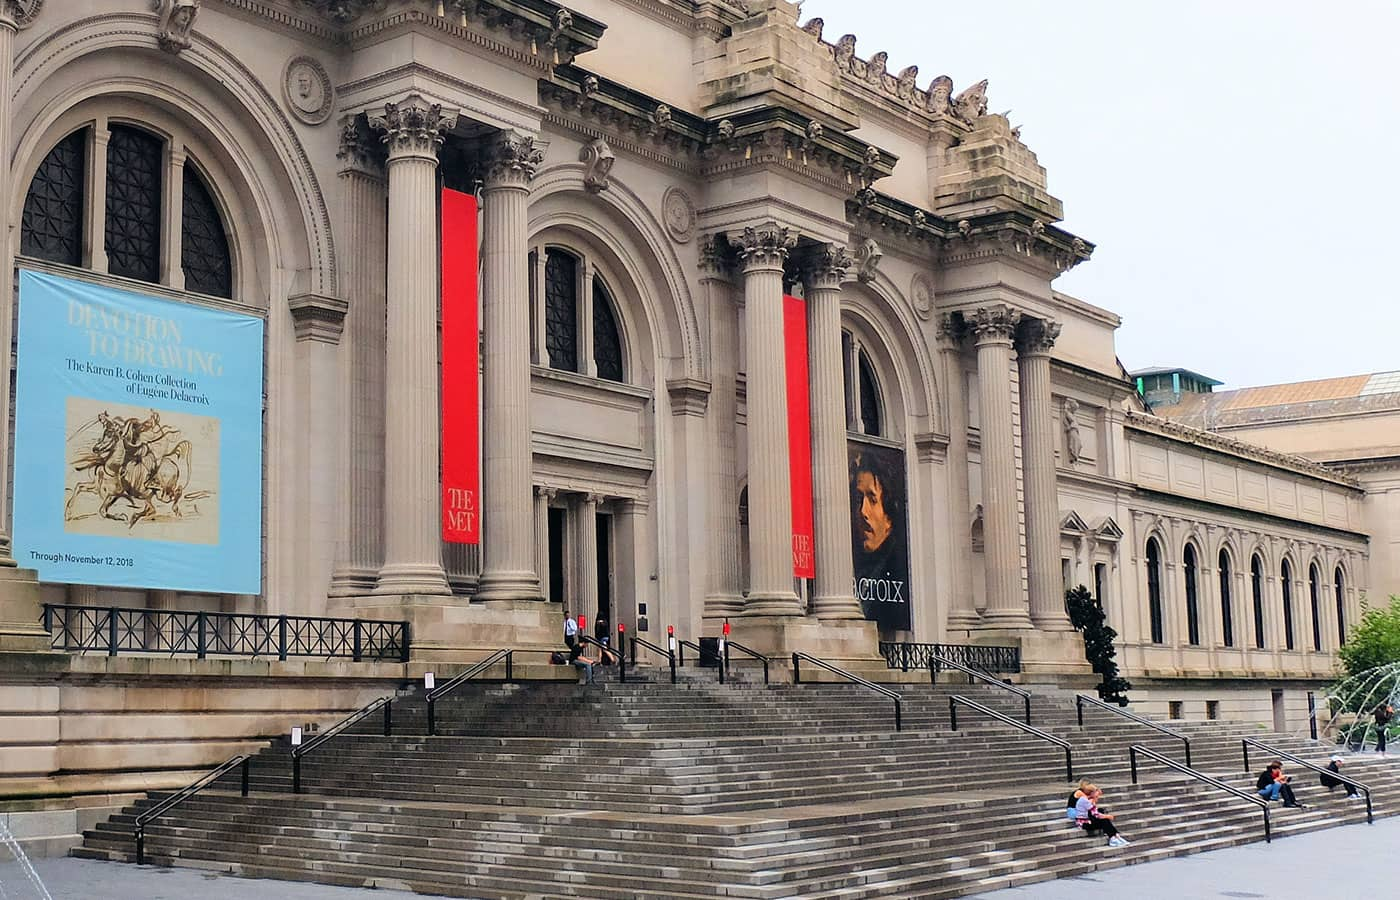 Difference between New York Sightseeing Flex Pass and Sightseeing Day Pass - The Met